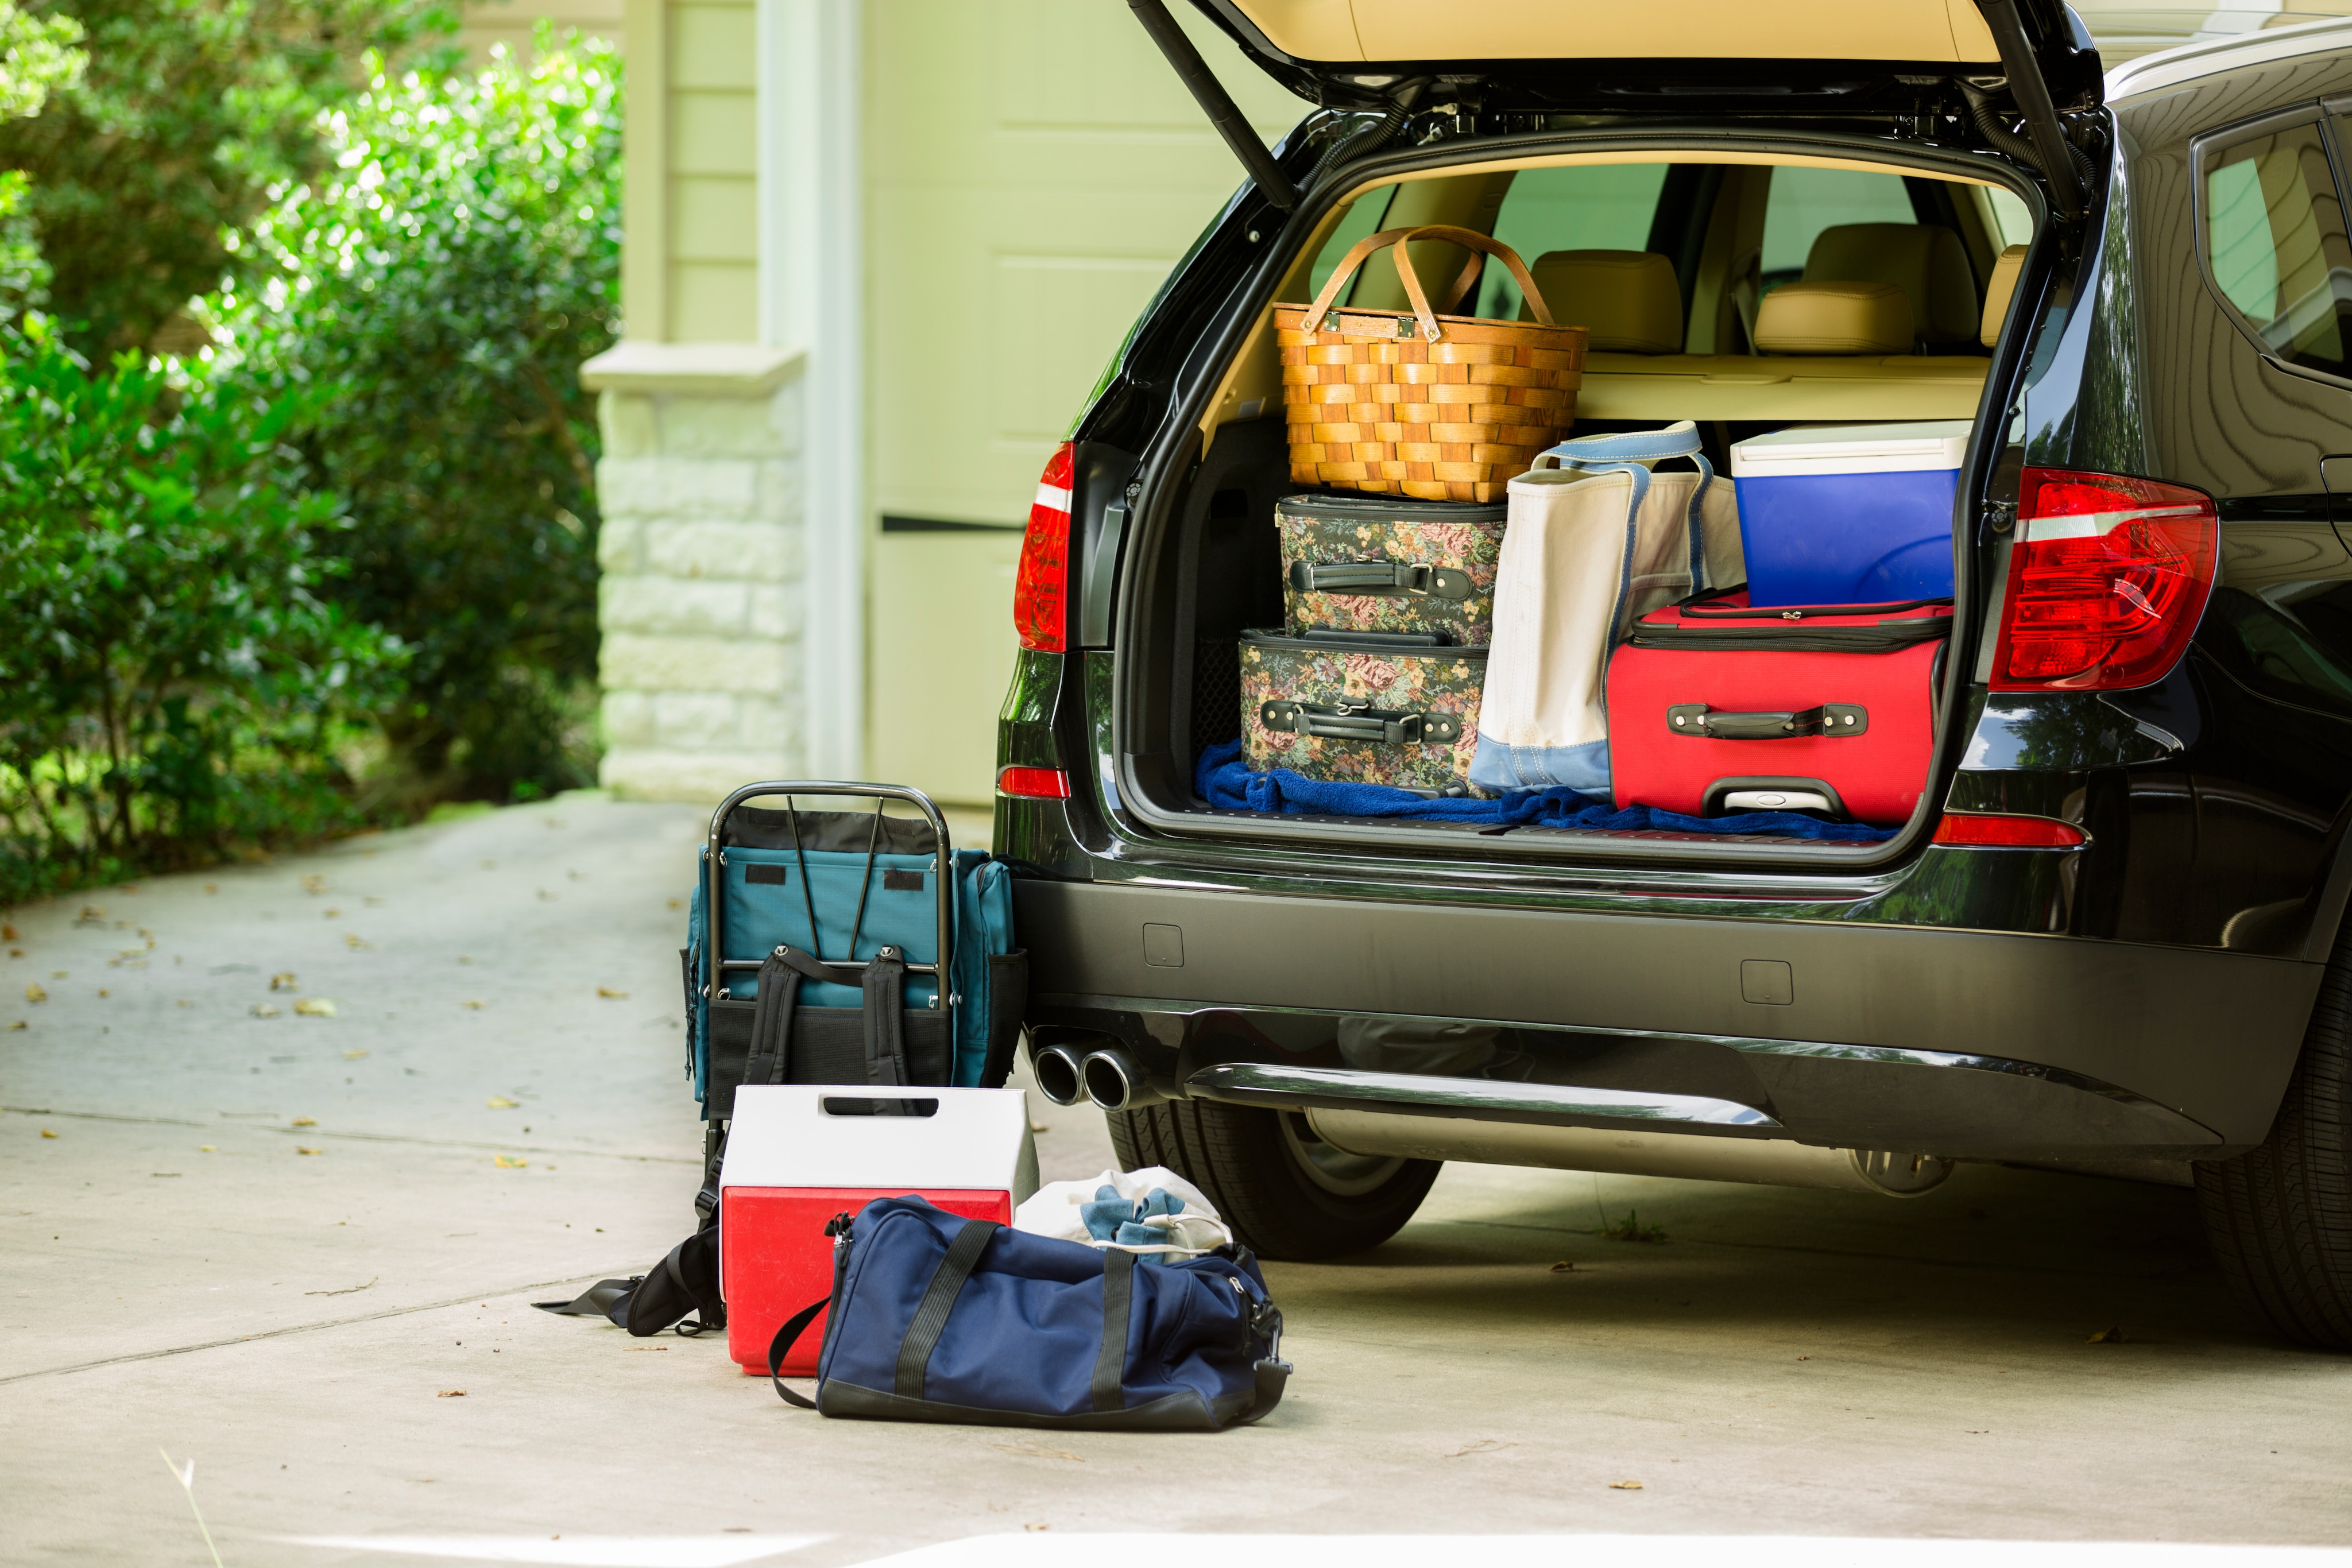 SUV trunk open and packed with luggage, a picnic basket, and cooler